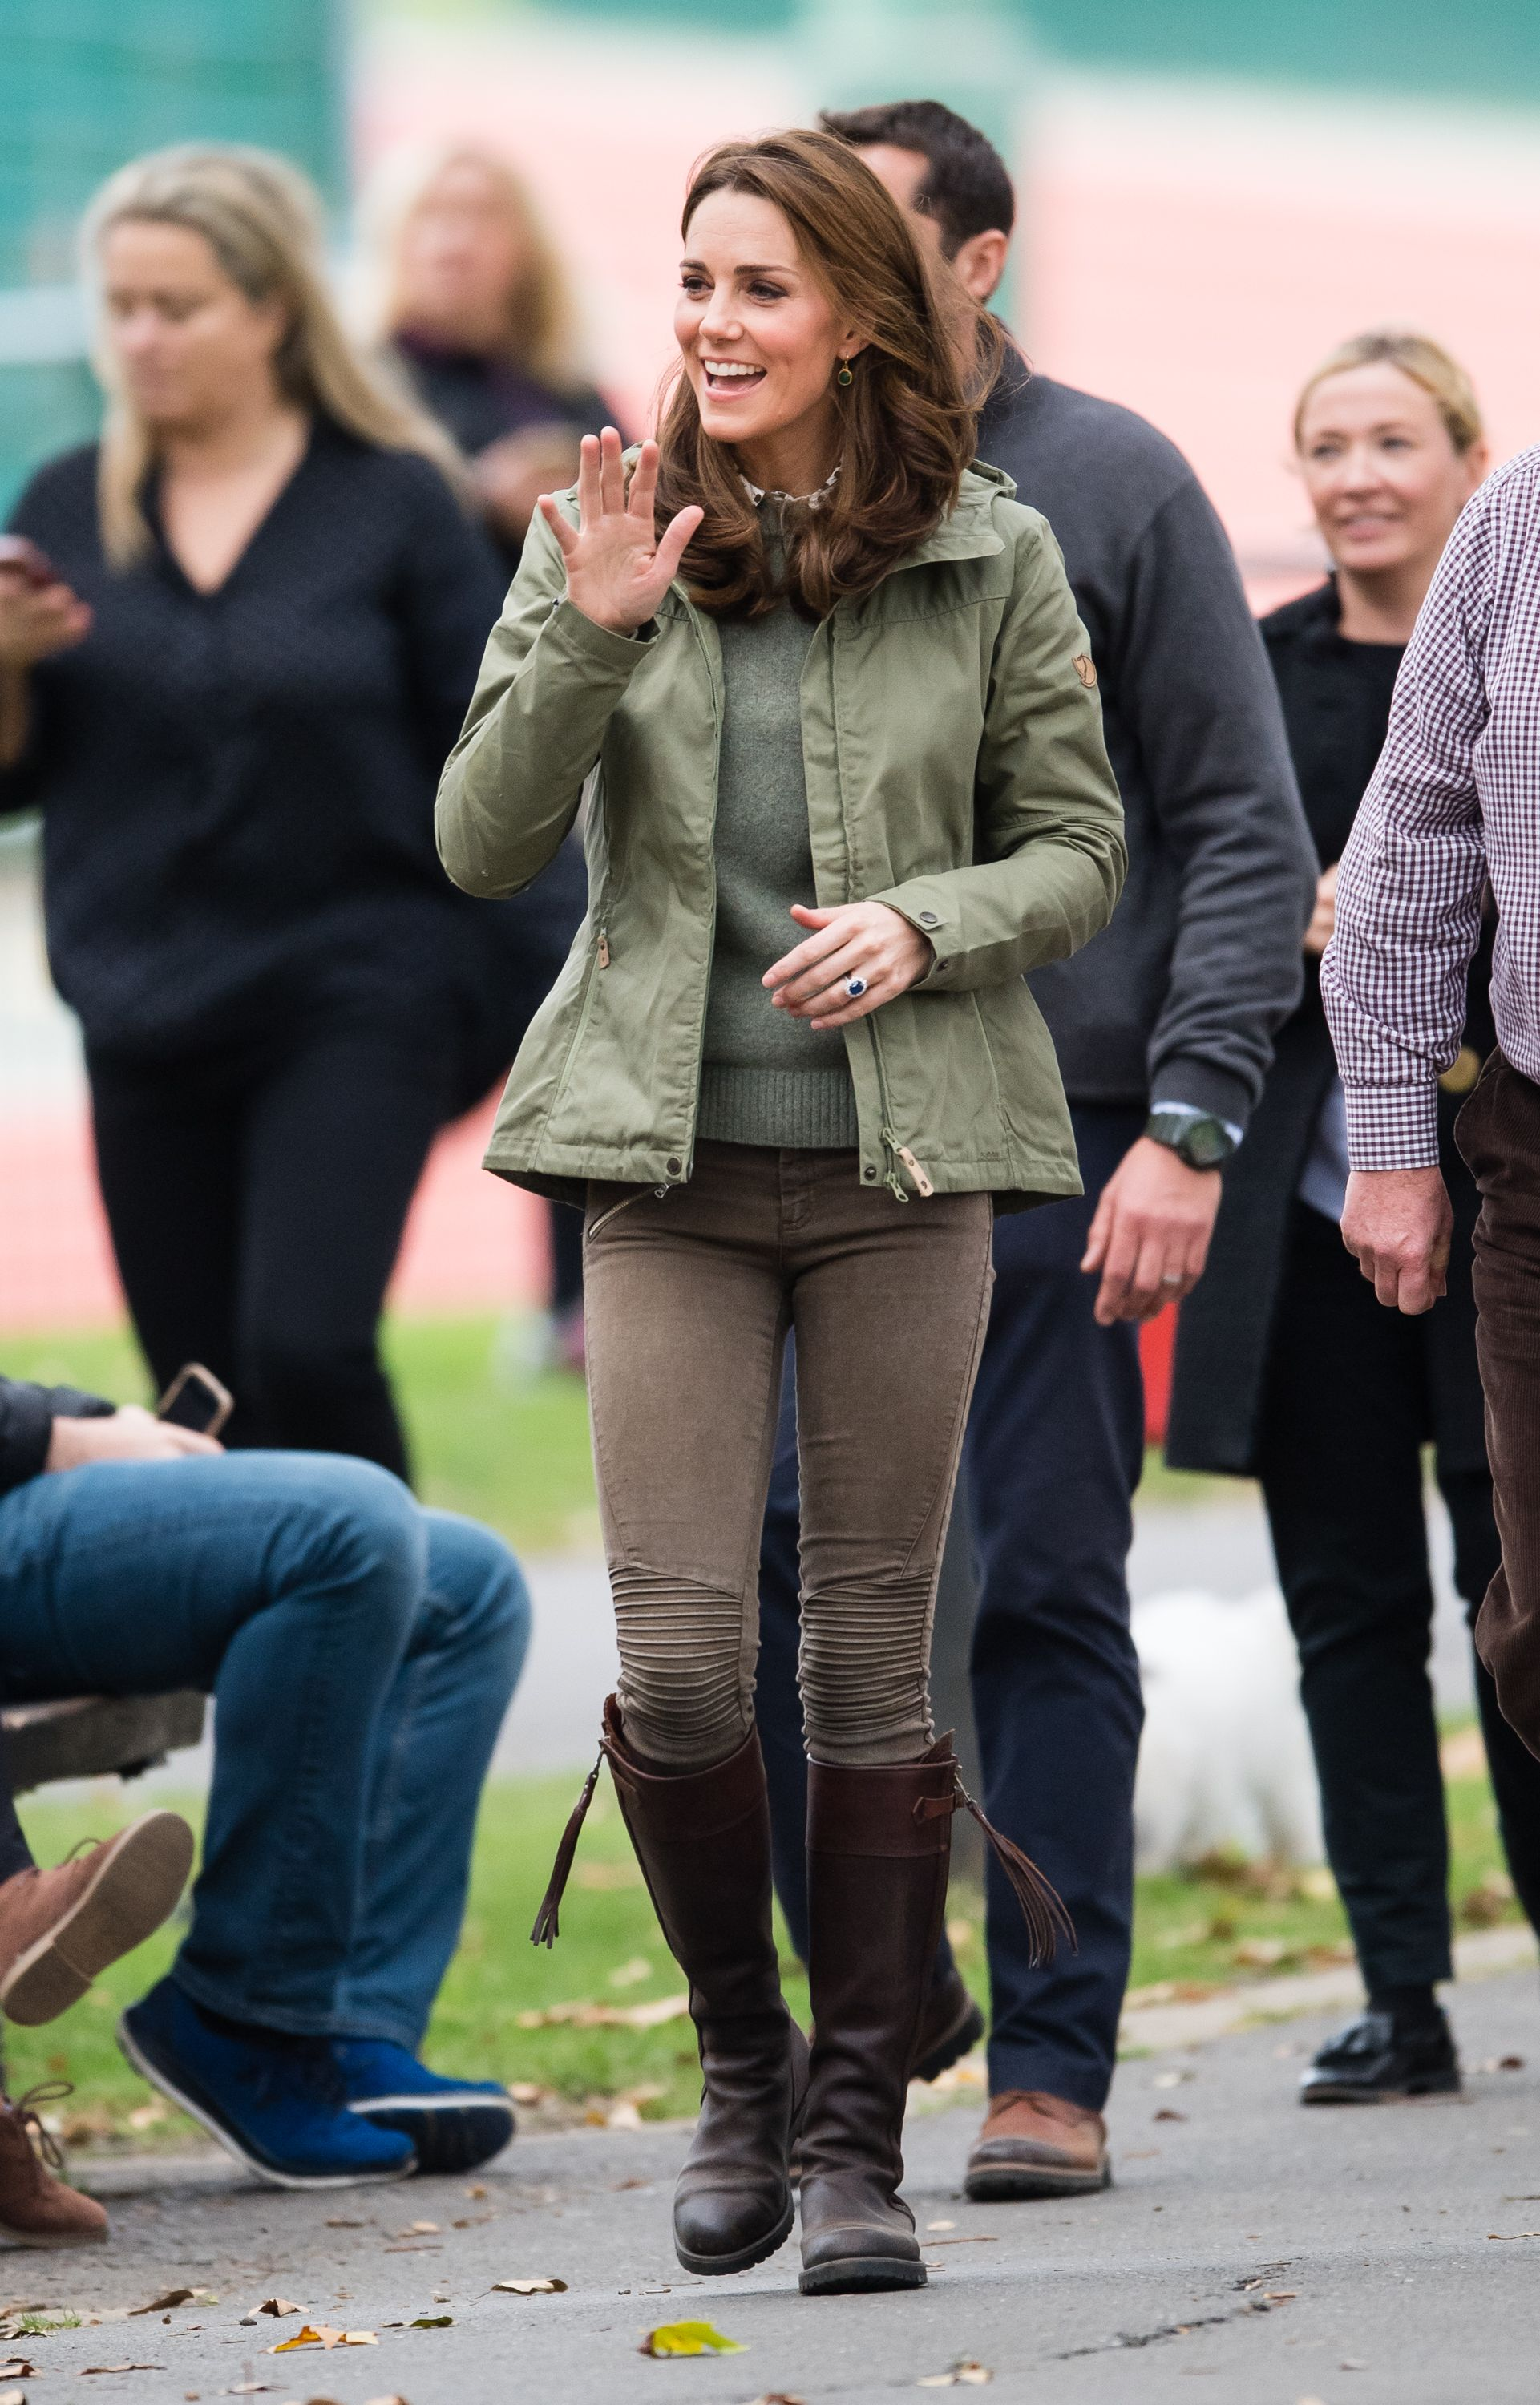 3de0277e376 Kate Middleton Wore an Army Green Fjallraven Jacket for Her Return From  Maternity Leave